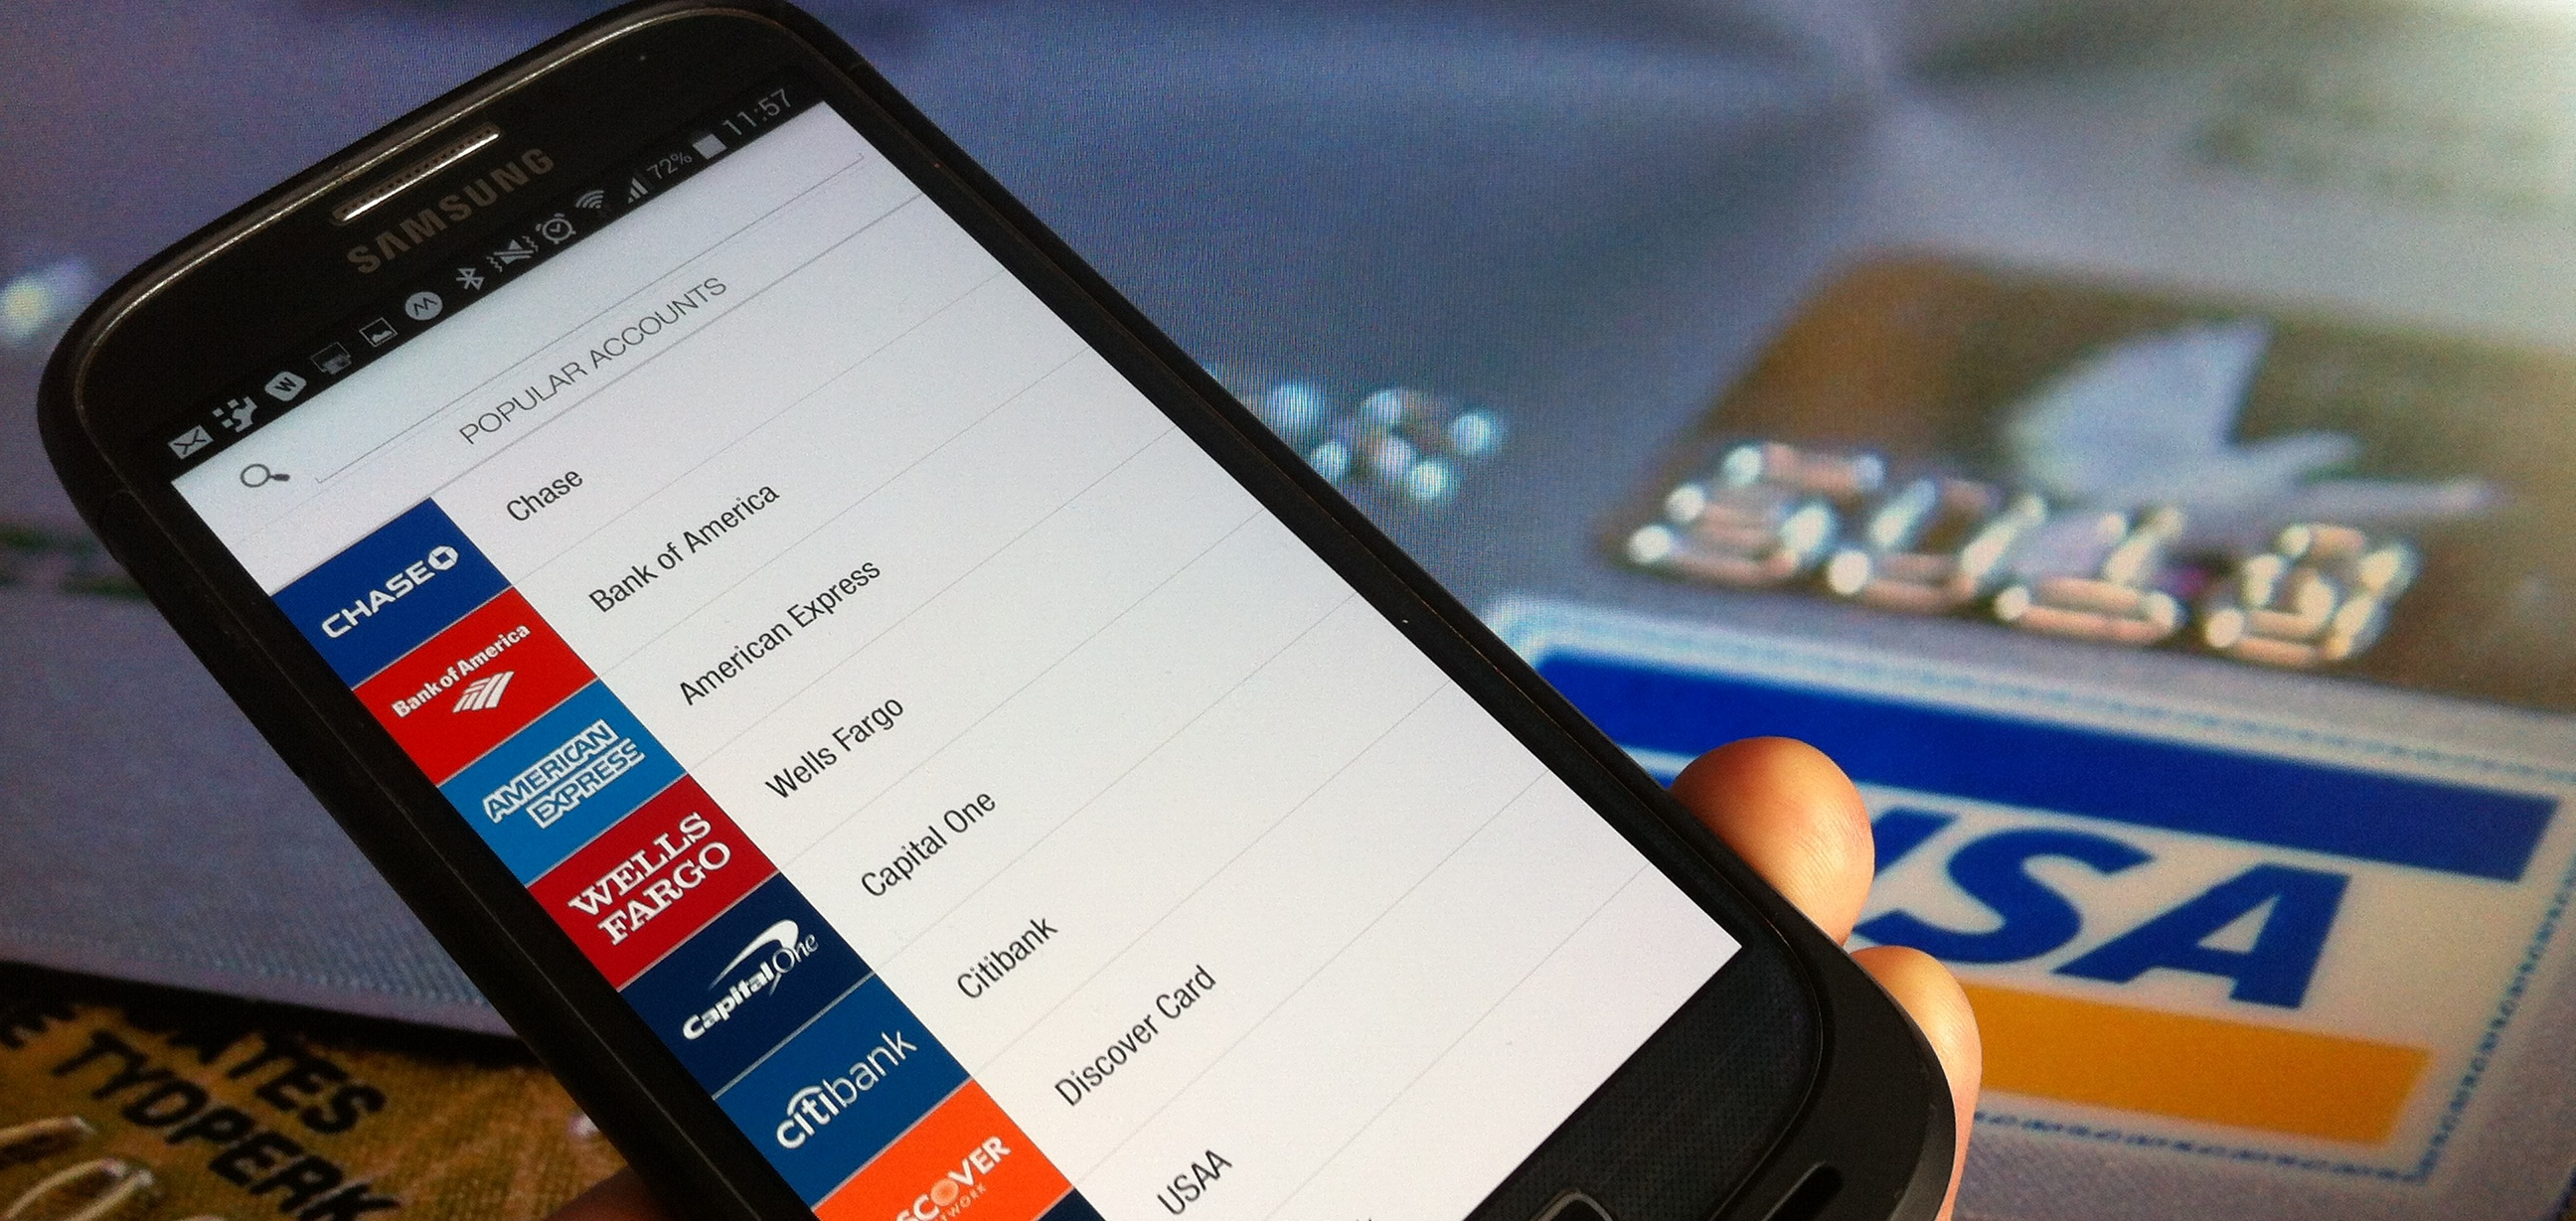 BillGuard Now Protects Consumers on Android Too